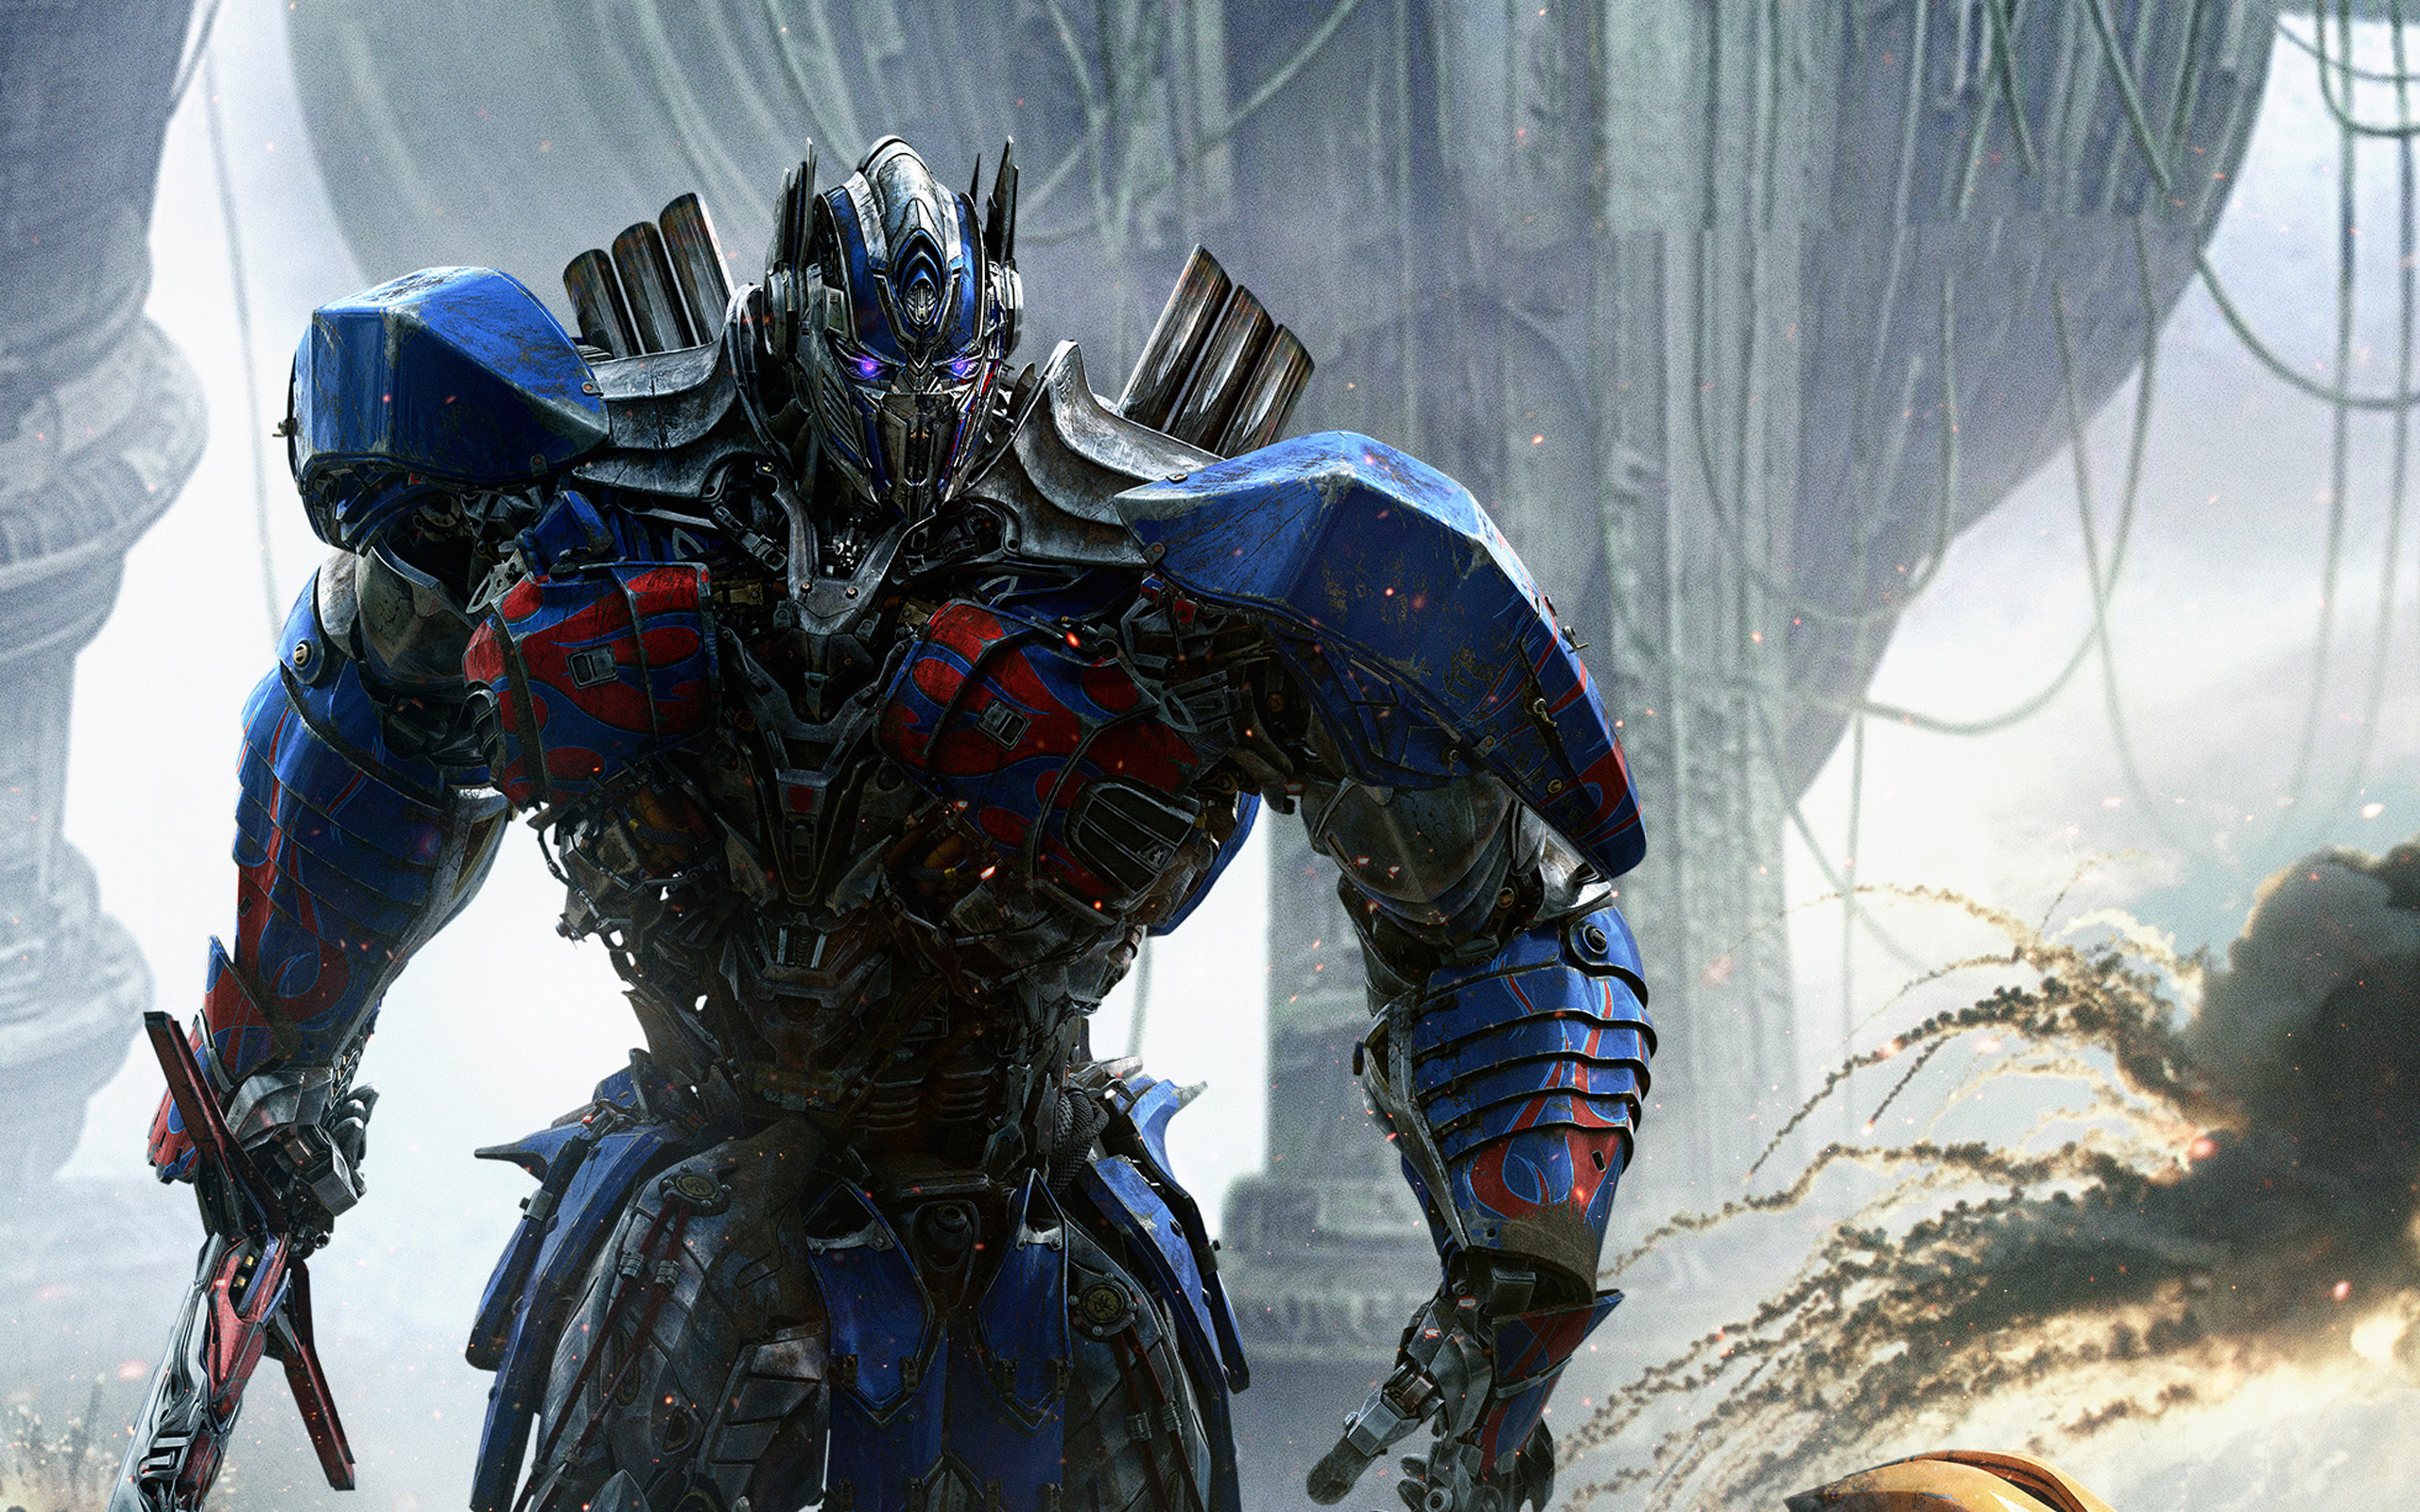 Optimus prime transformers the last knight. обои скачать